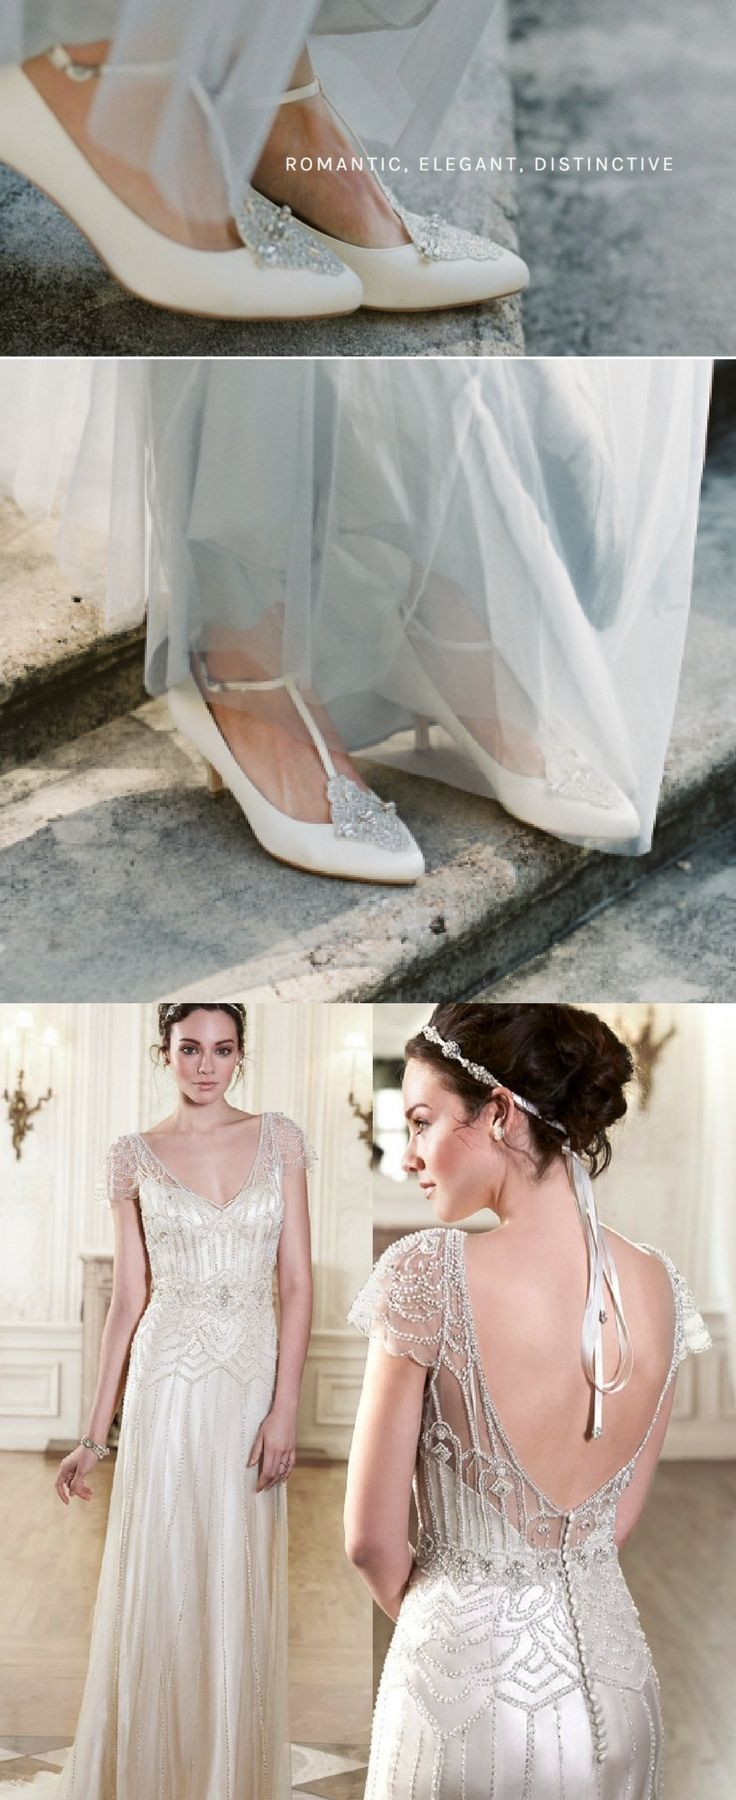 Gatsby and Vintage-inspired brides, these Annalise from Bella Belle will steal your heart. The beaded satin kitten heels with t-straps will be the finishing touch for your outfit. Speaking of outfit, what about this Maggie Sottero's Ettia Vintage dress? Glamour and romance through and through!